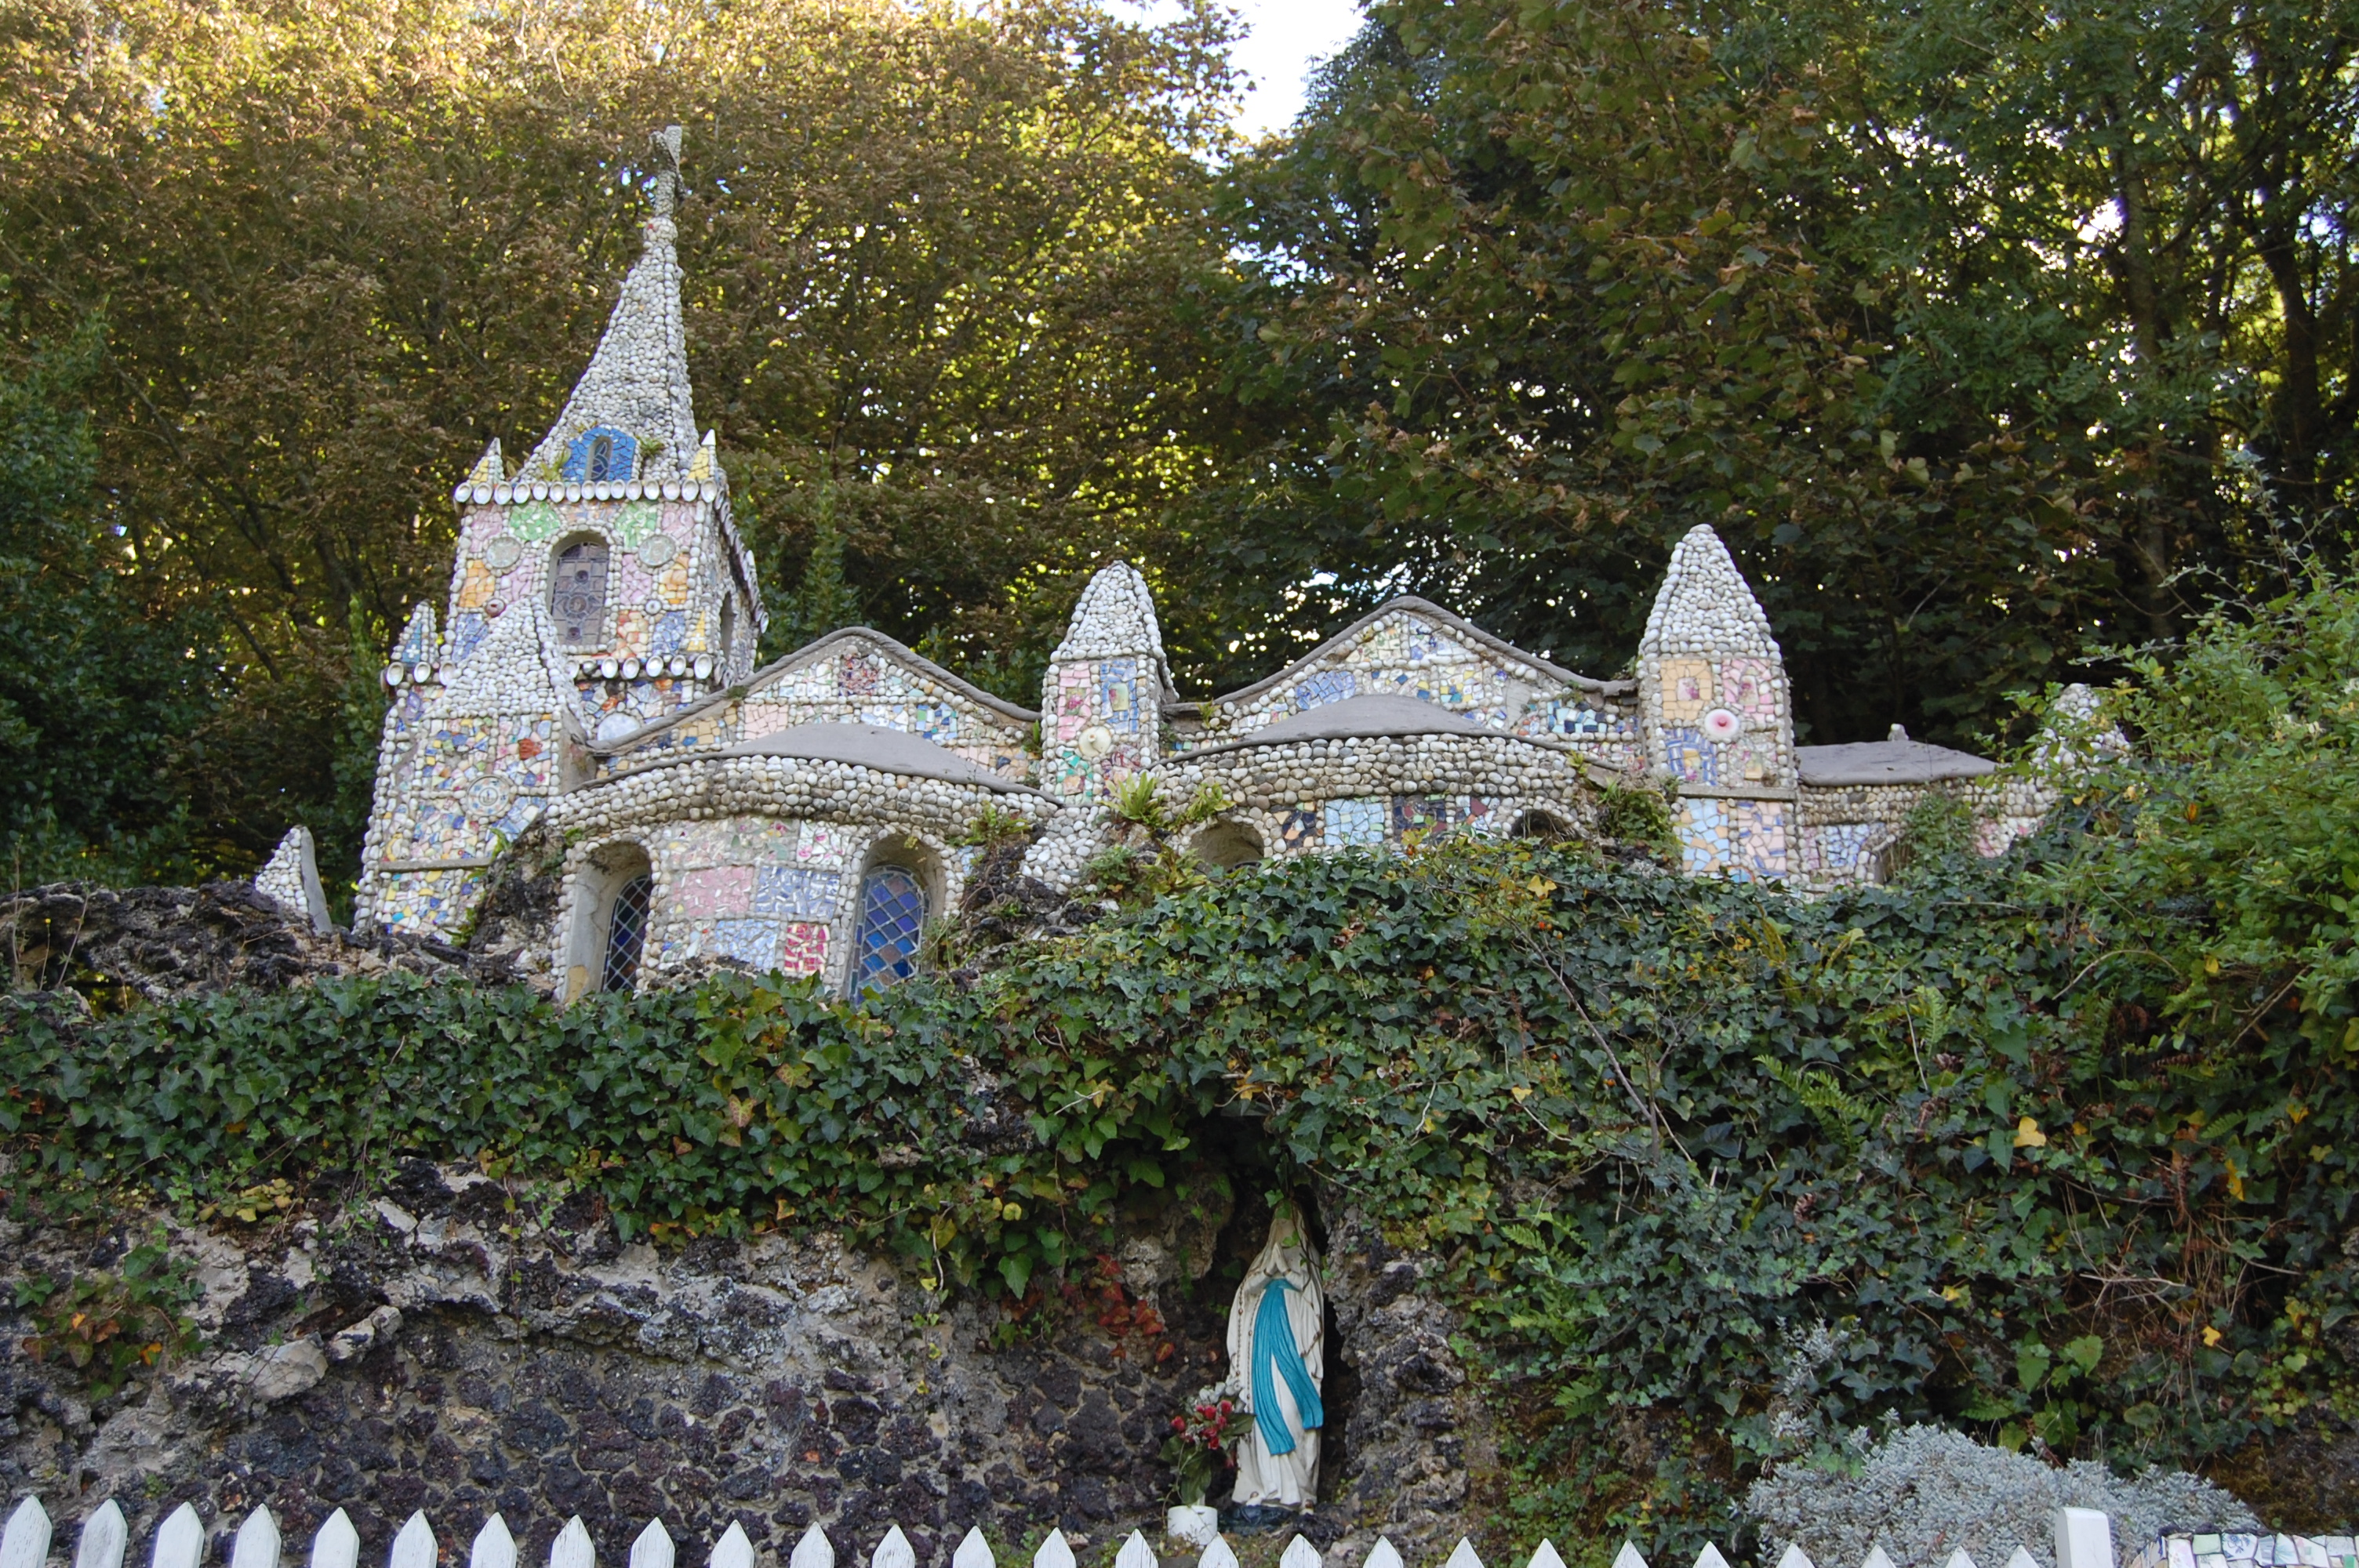 the Little Chapel, The Guernsey Literary and Potato Peel Society, church made of a mosaic of broken ceramics, church made of broken pottery, real places from Guernsey Literary and Potato Peel Society